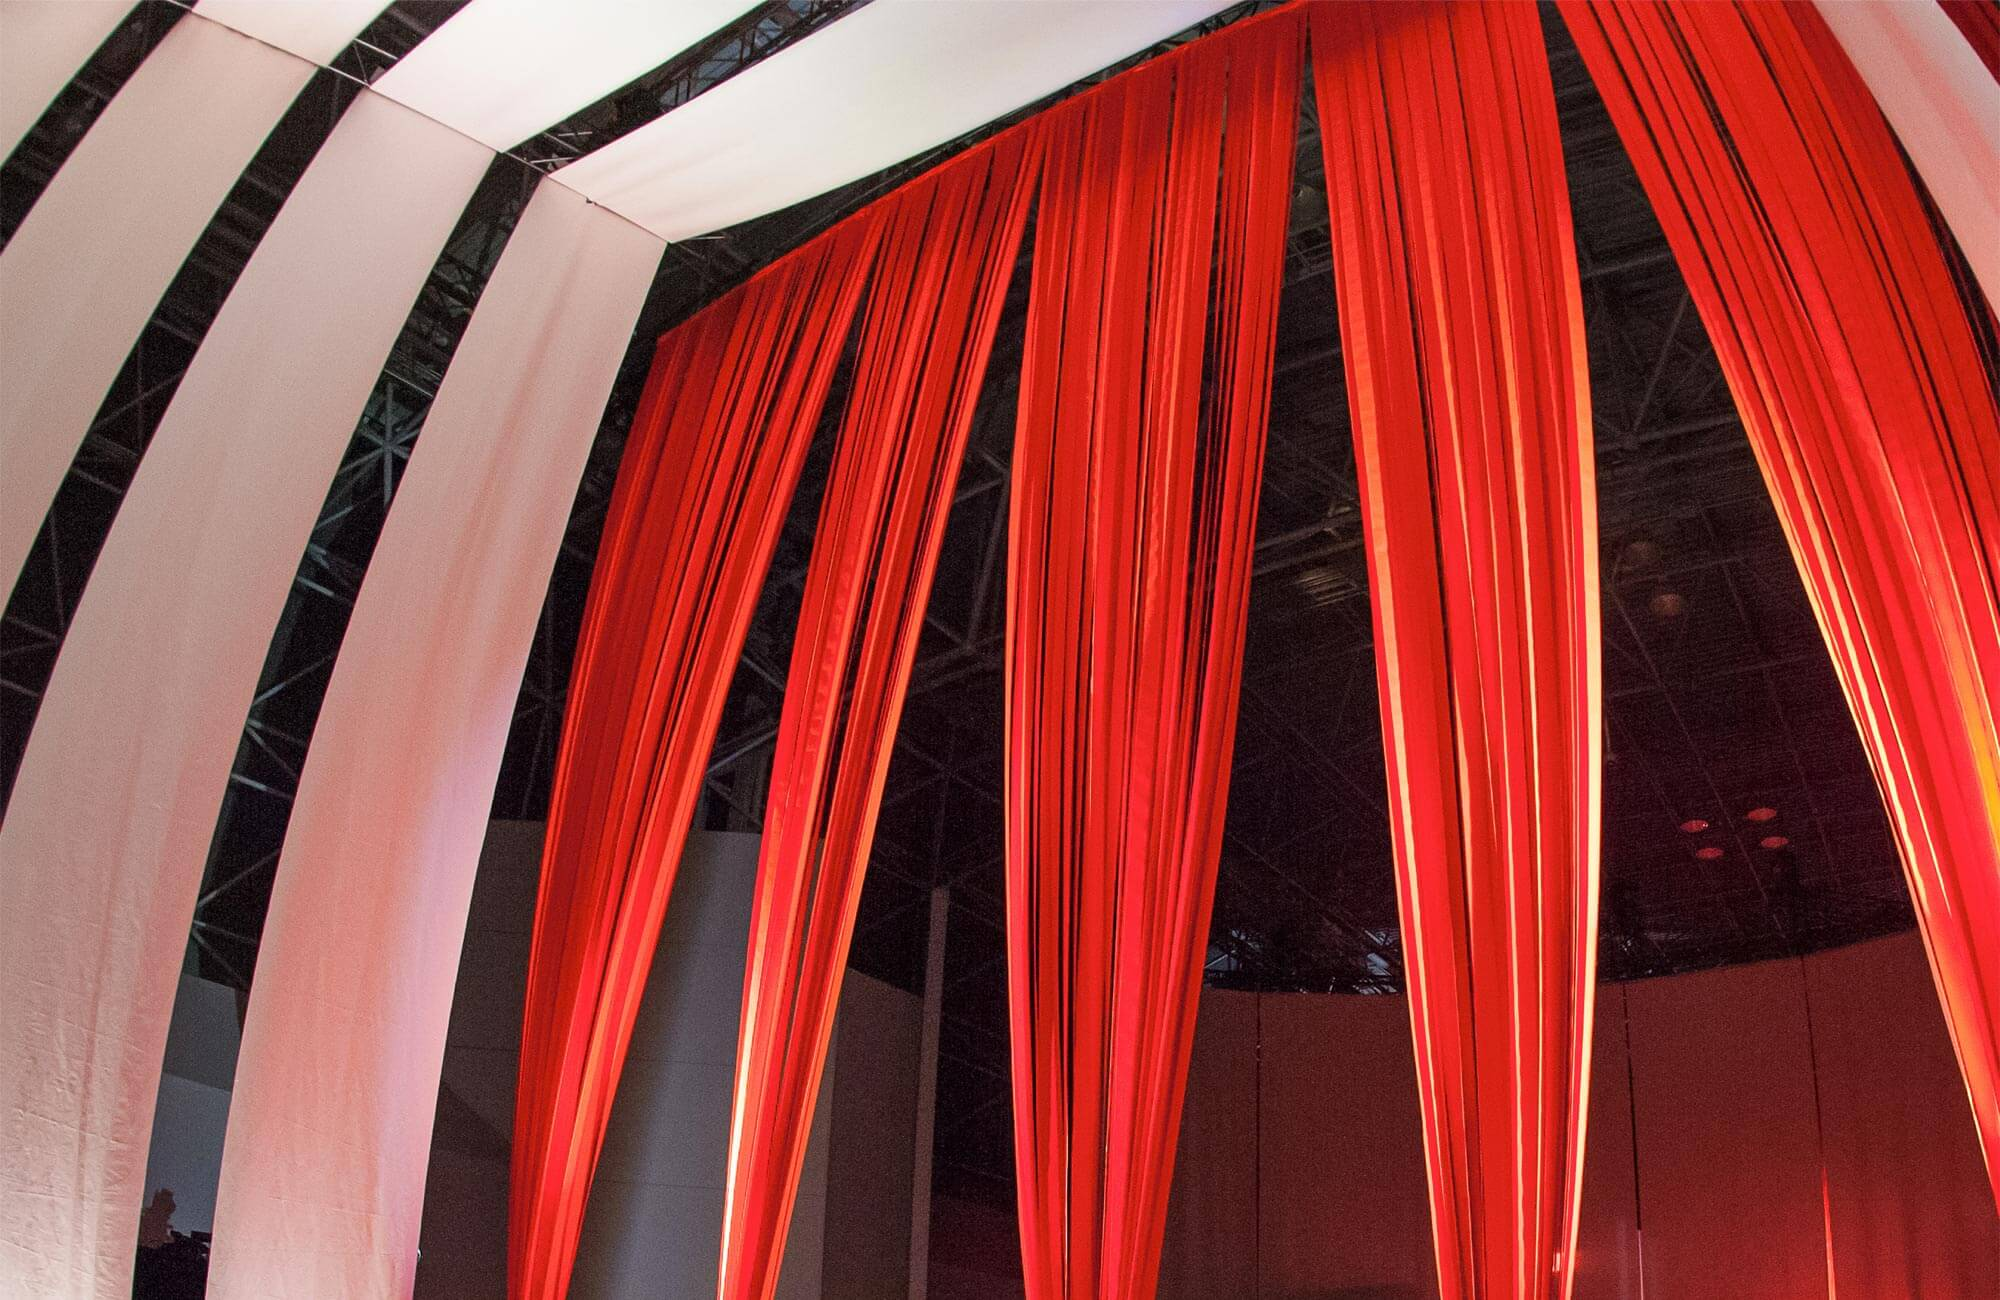 Looking up at the Hall of Fame curtain made using strips of Sunbrella Orange fabric.